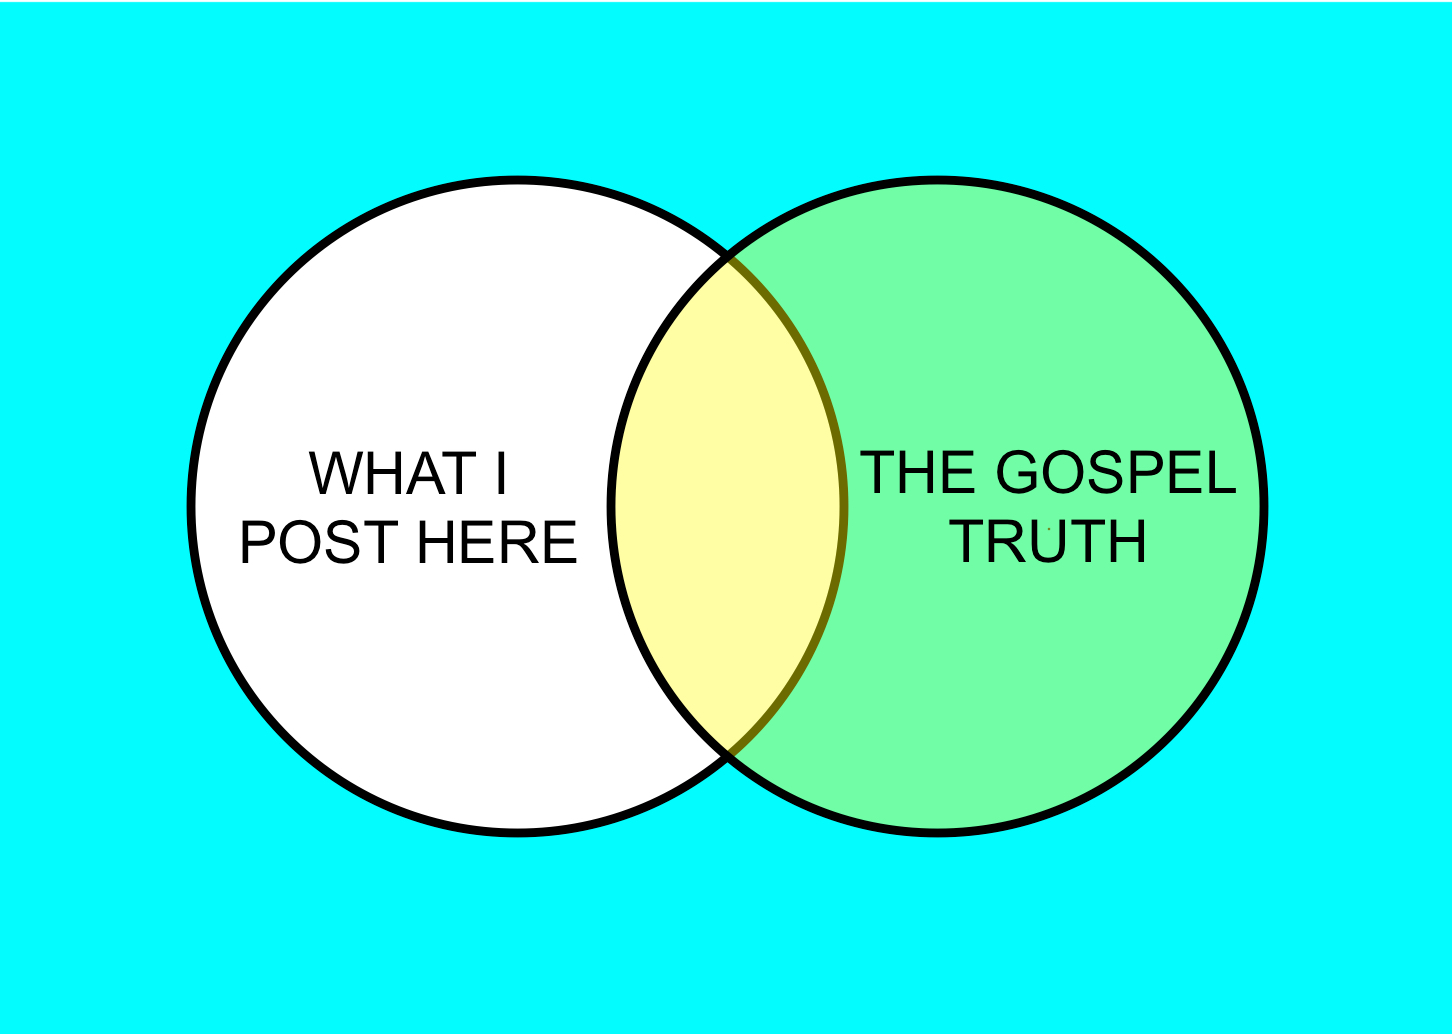 Psa venn diagrams that of lowly pwuth pooptronica